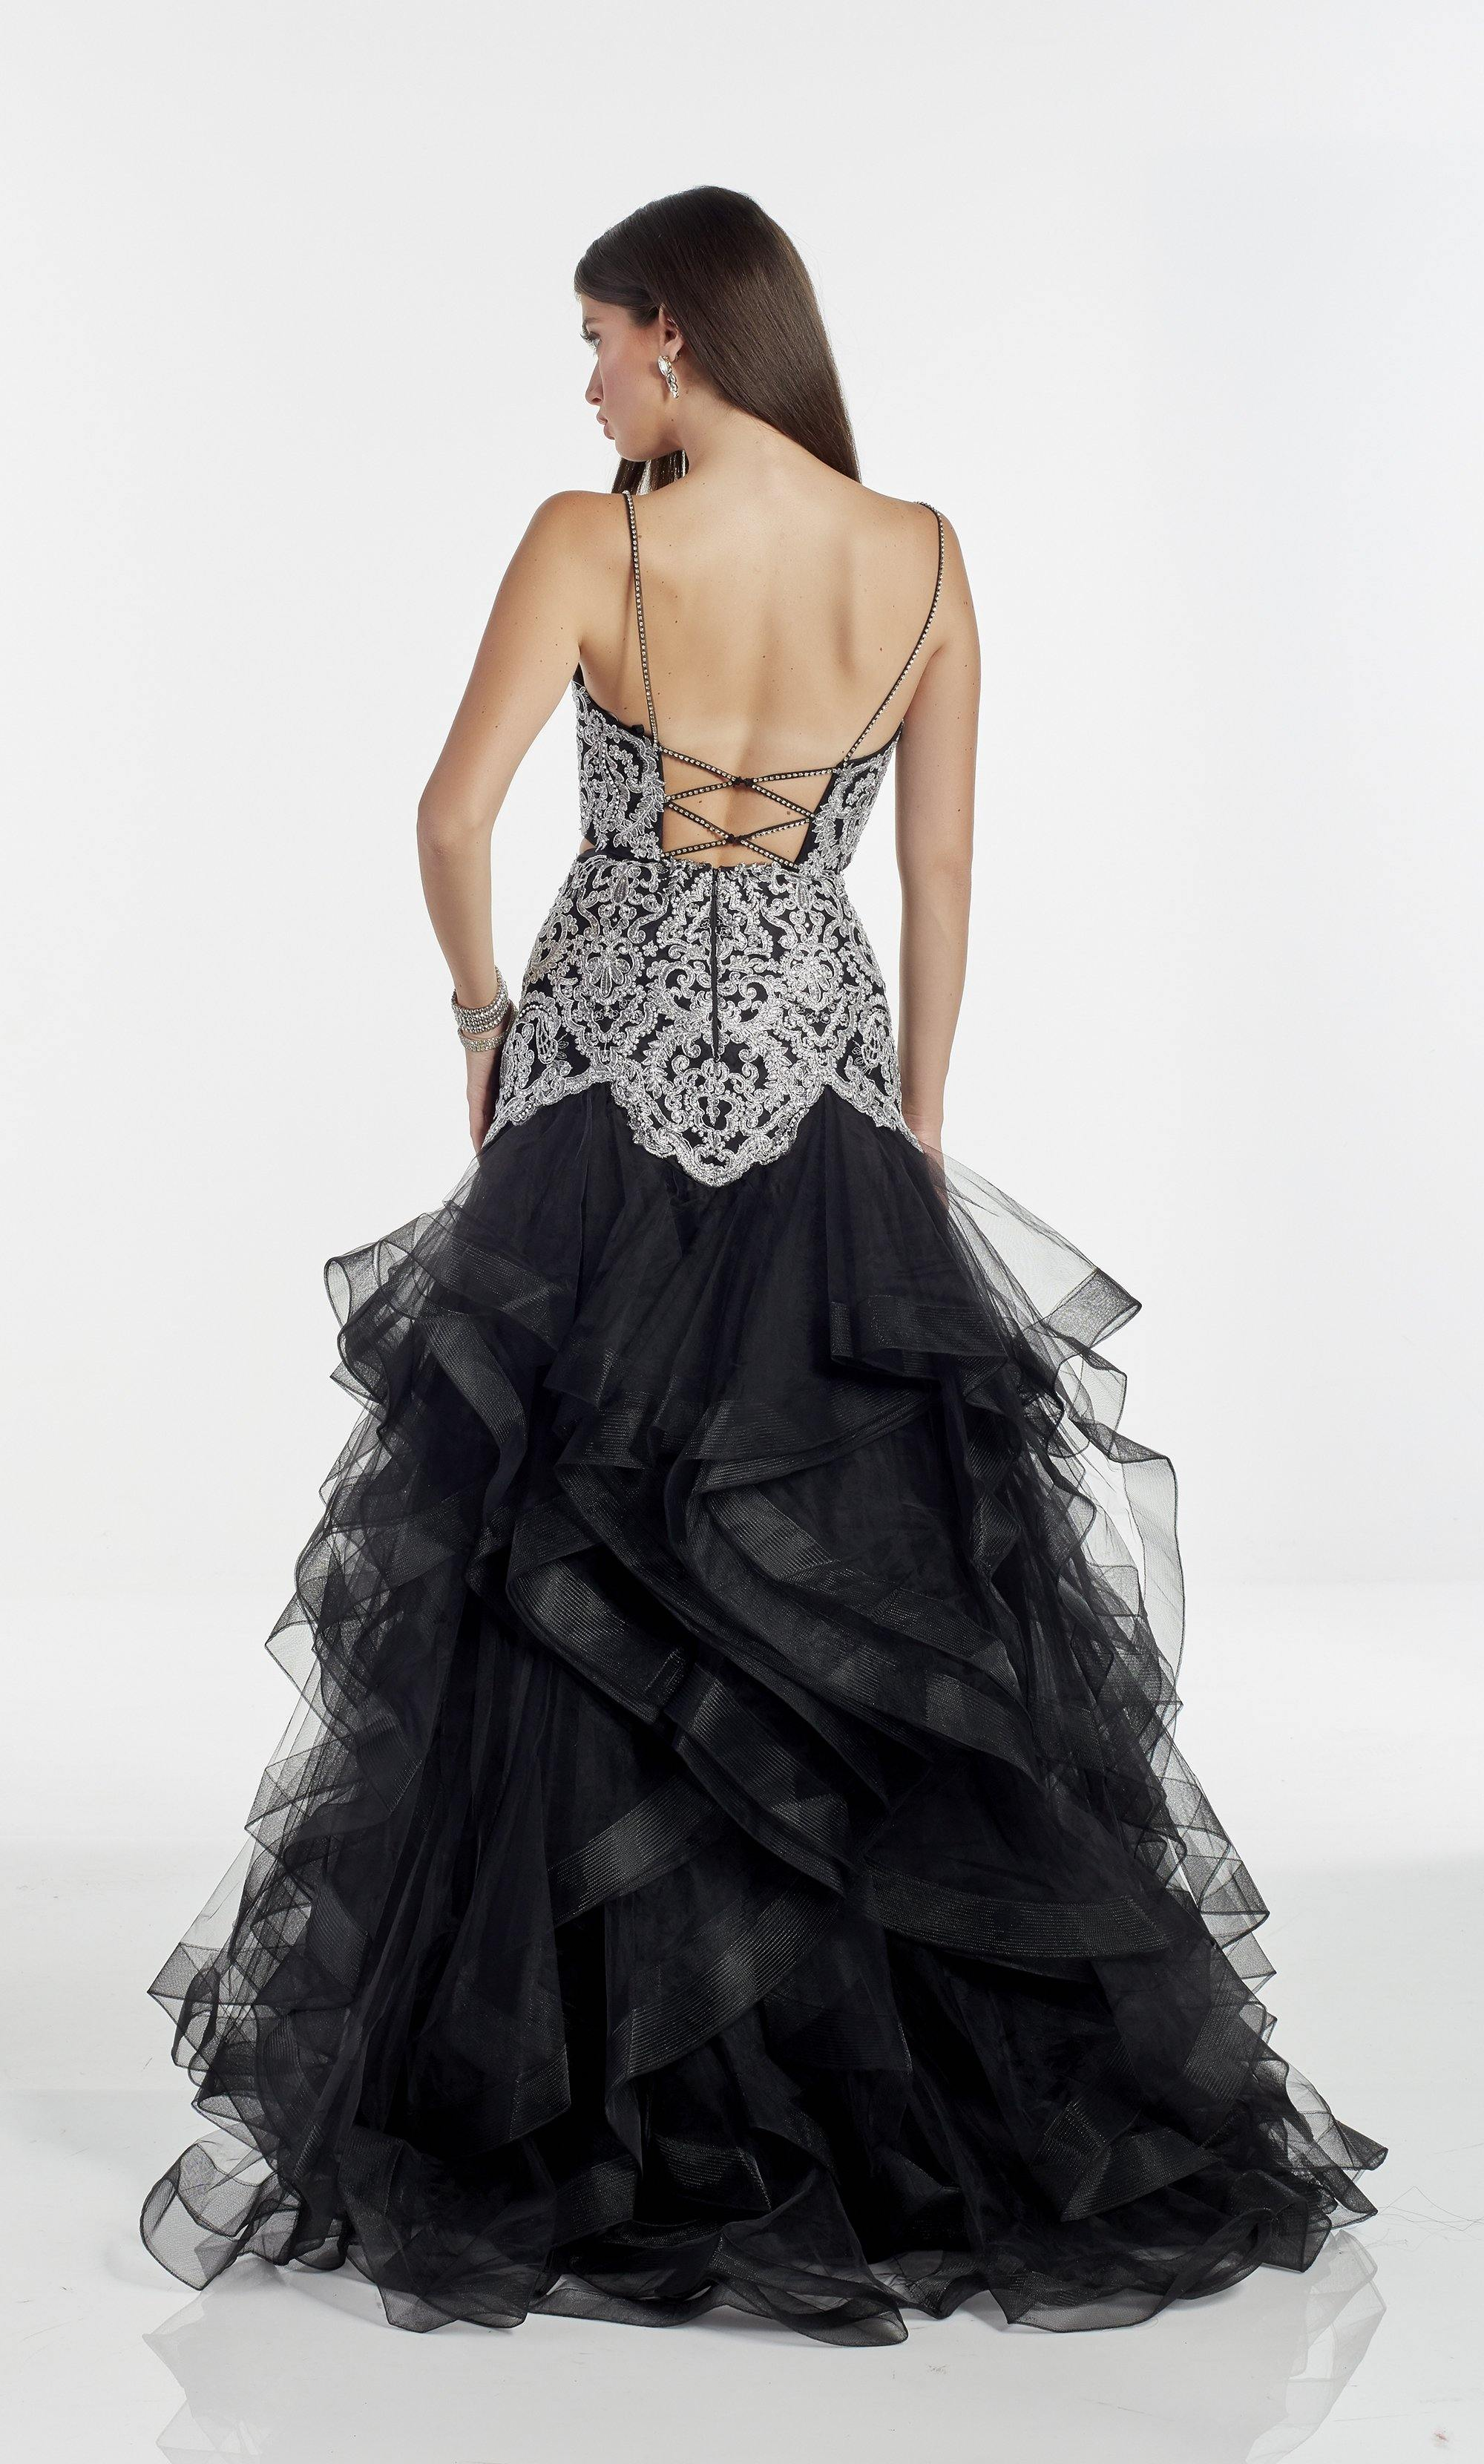 Black two piece ballgown with a V neckline, silver embroidery, and layered skirt